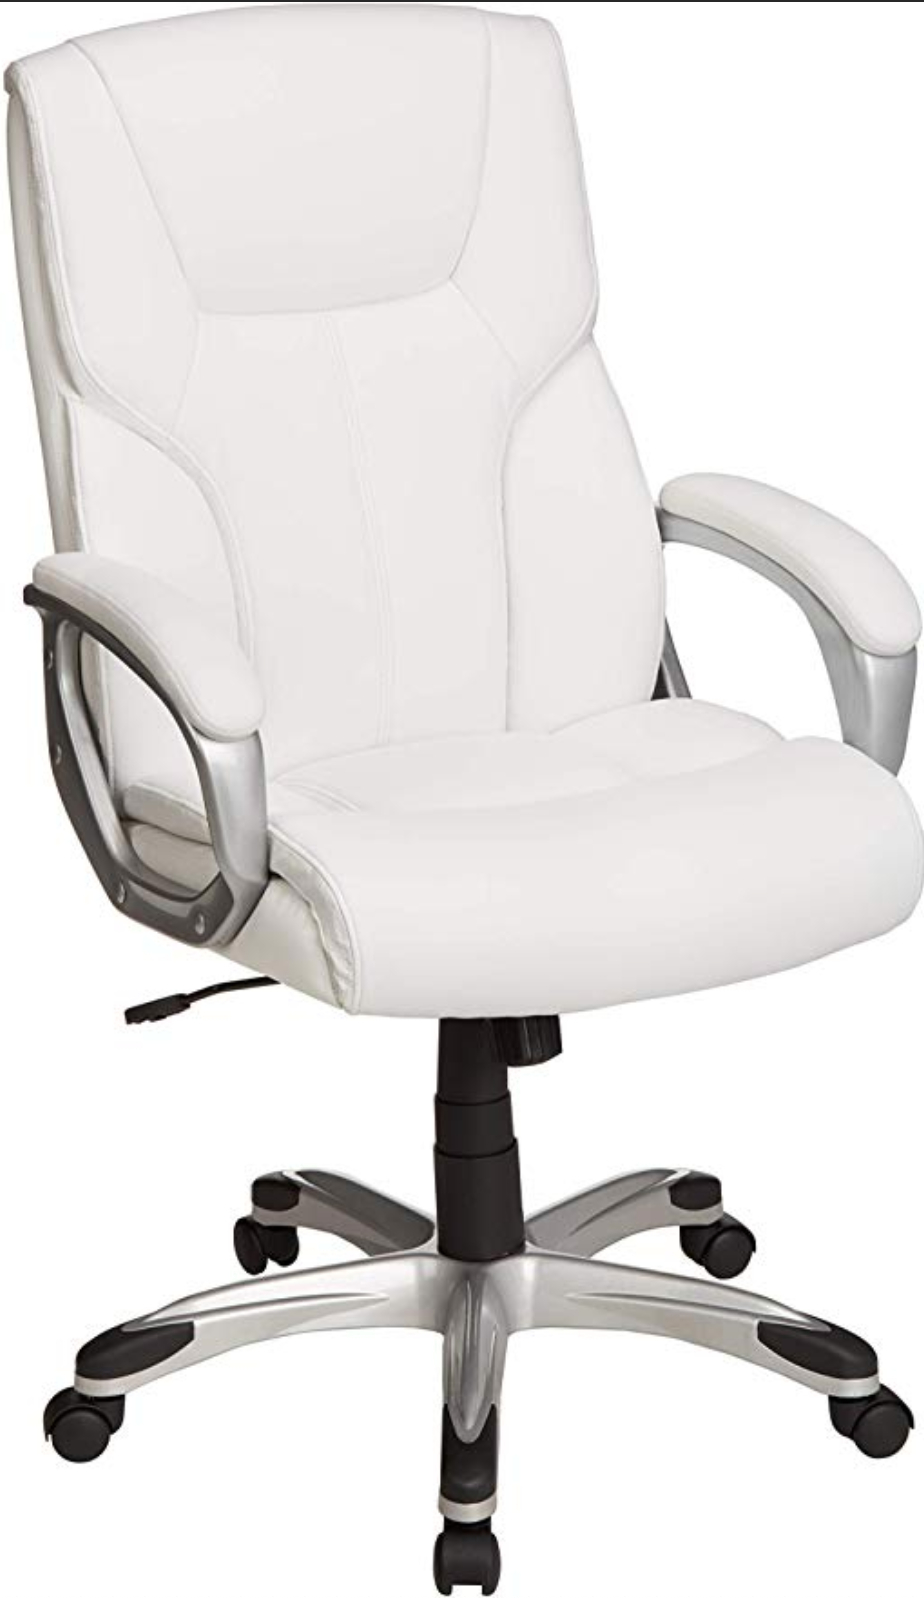 Amazonbasics High Back Executive Swivel Office Chair Throughout High Back Sofas And Chairs (View 10 of 15)